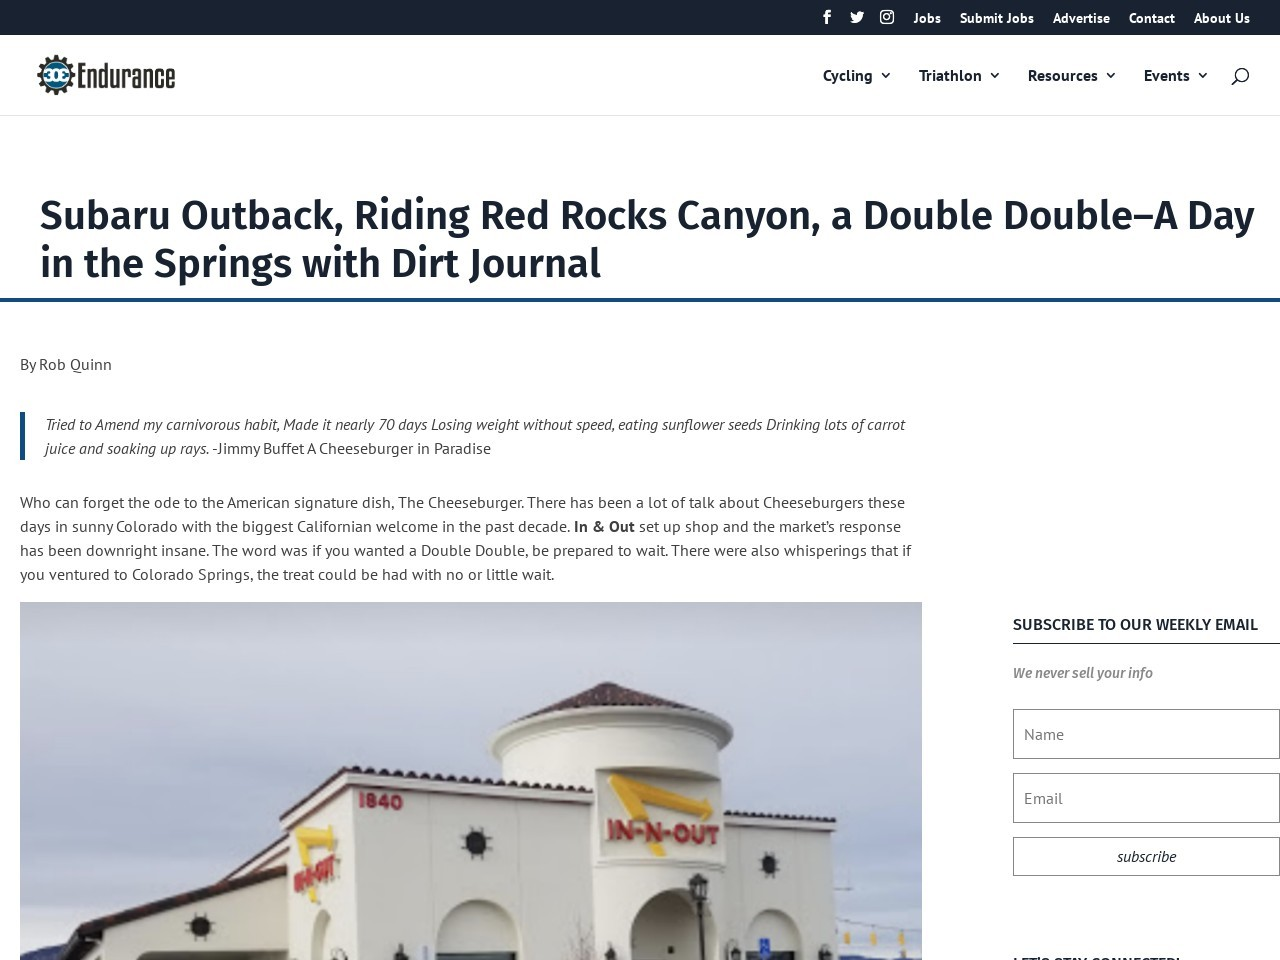 Subaru Outback, Riding Red Rocks Canyon, a Double Double–A Day in the Springs with Dirt Journal